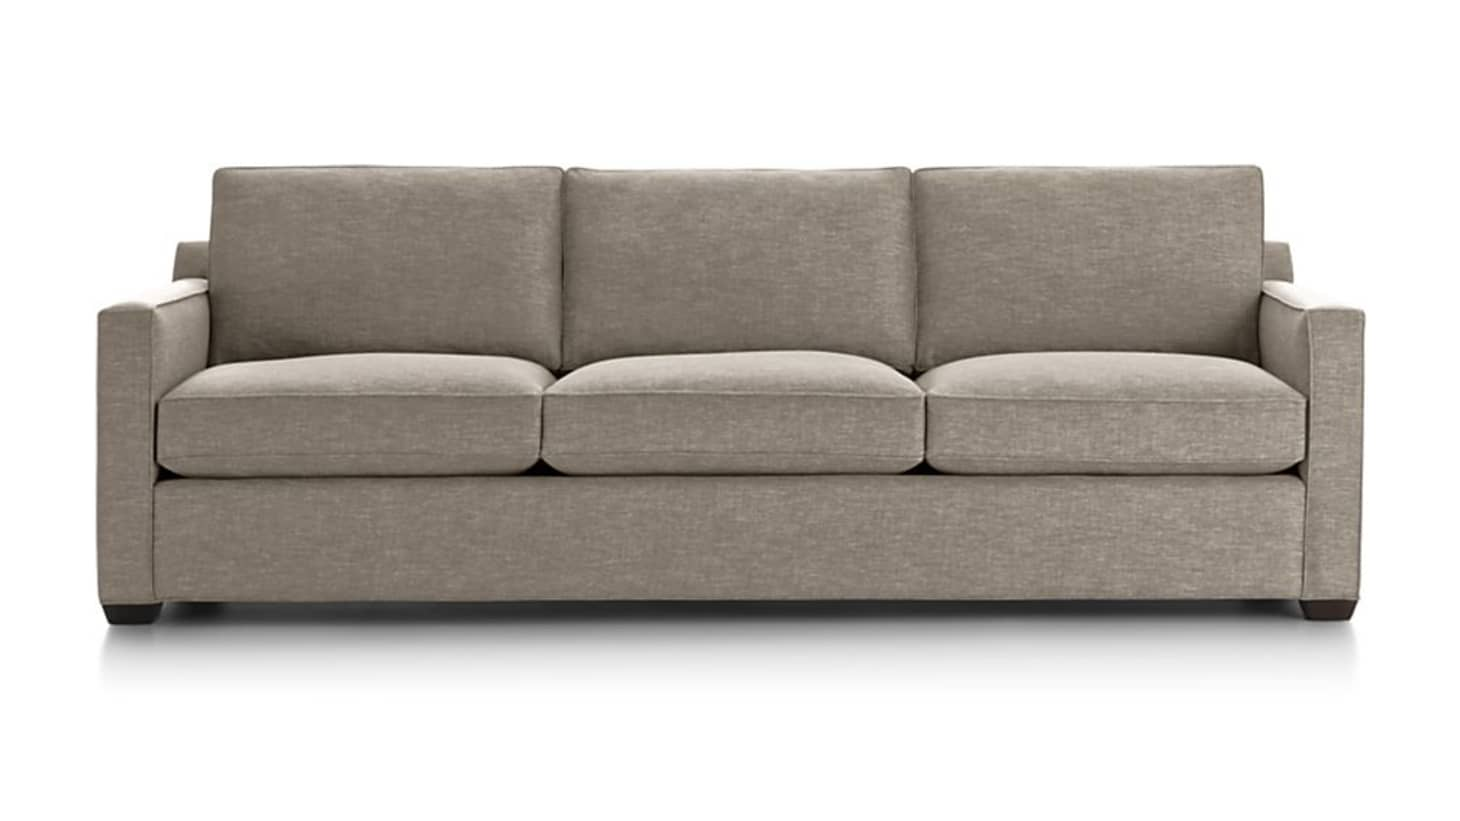 Stupendous Reviewed The Most Comfortable Sofas At Crate Barrel Cjindustries Chair Design For Home Cjindustriesco